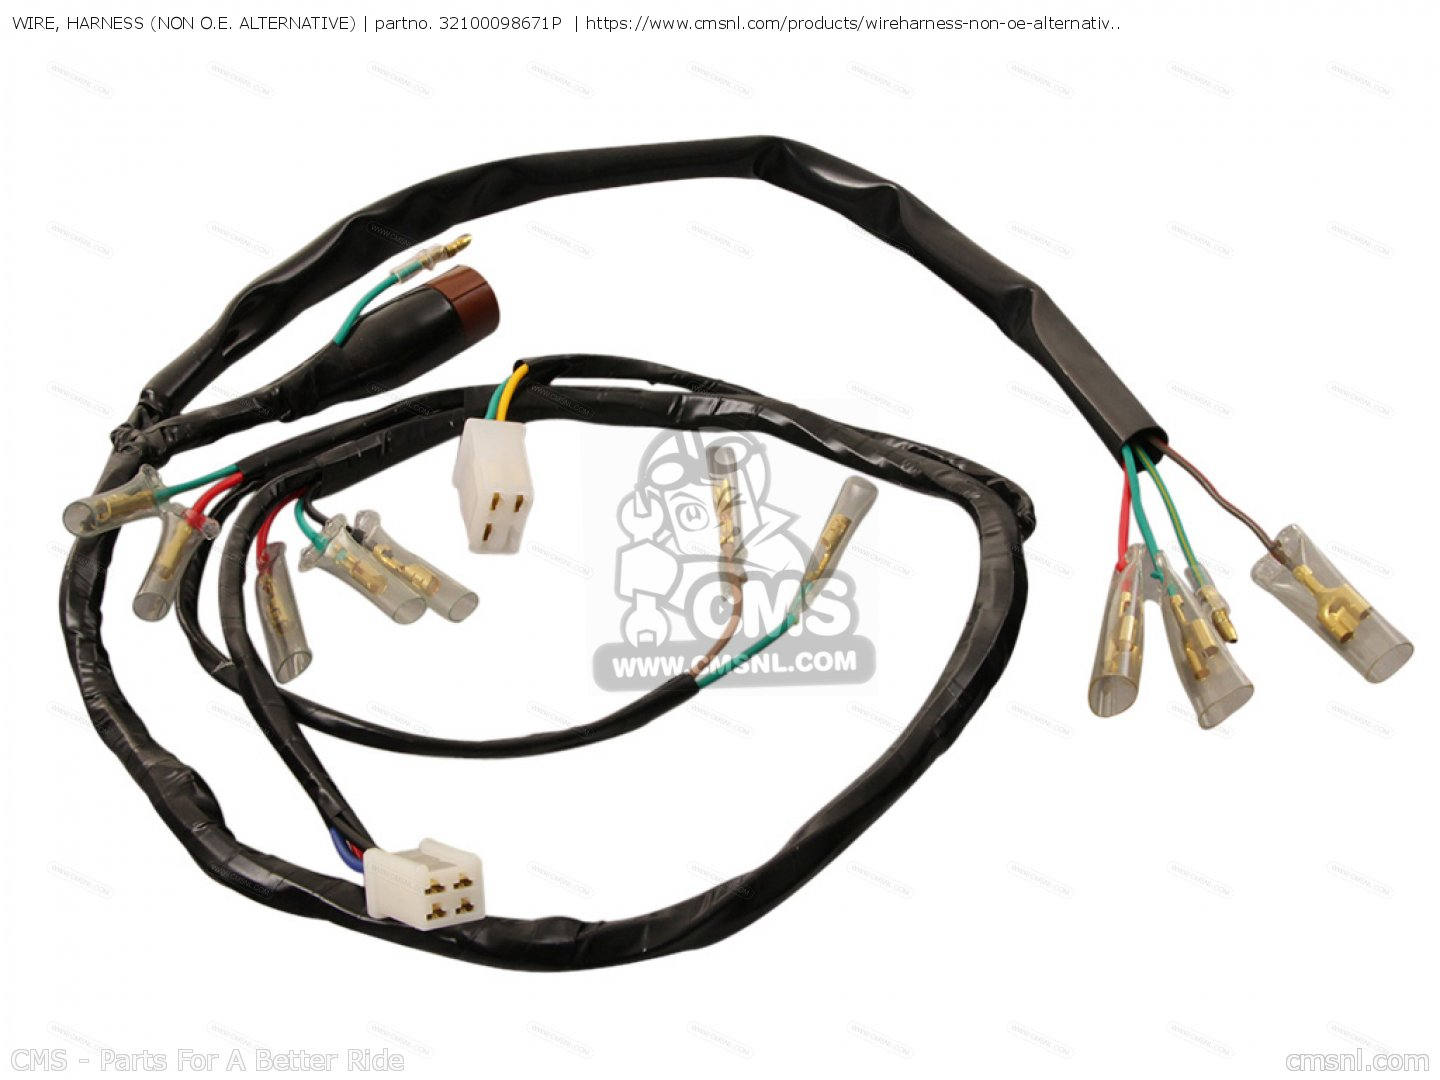 Wire Harness Non Oe Alternative For St50 Dax England Order At Wiring Photo